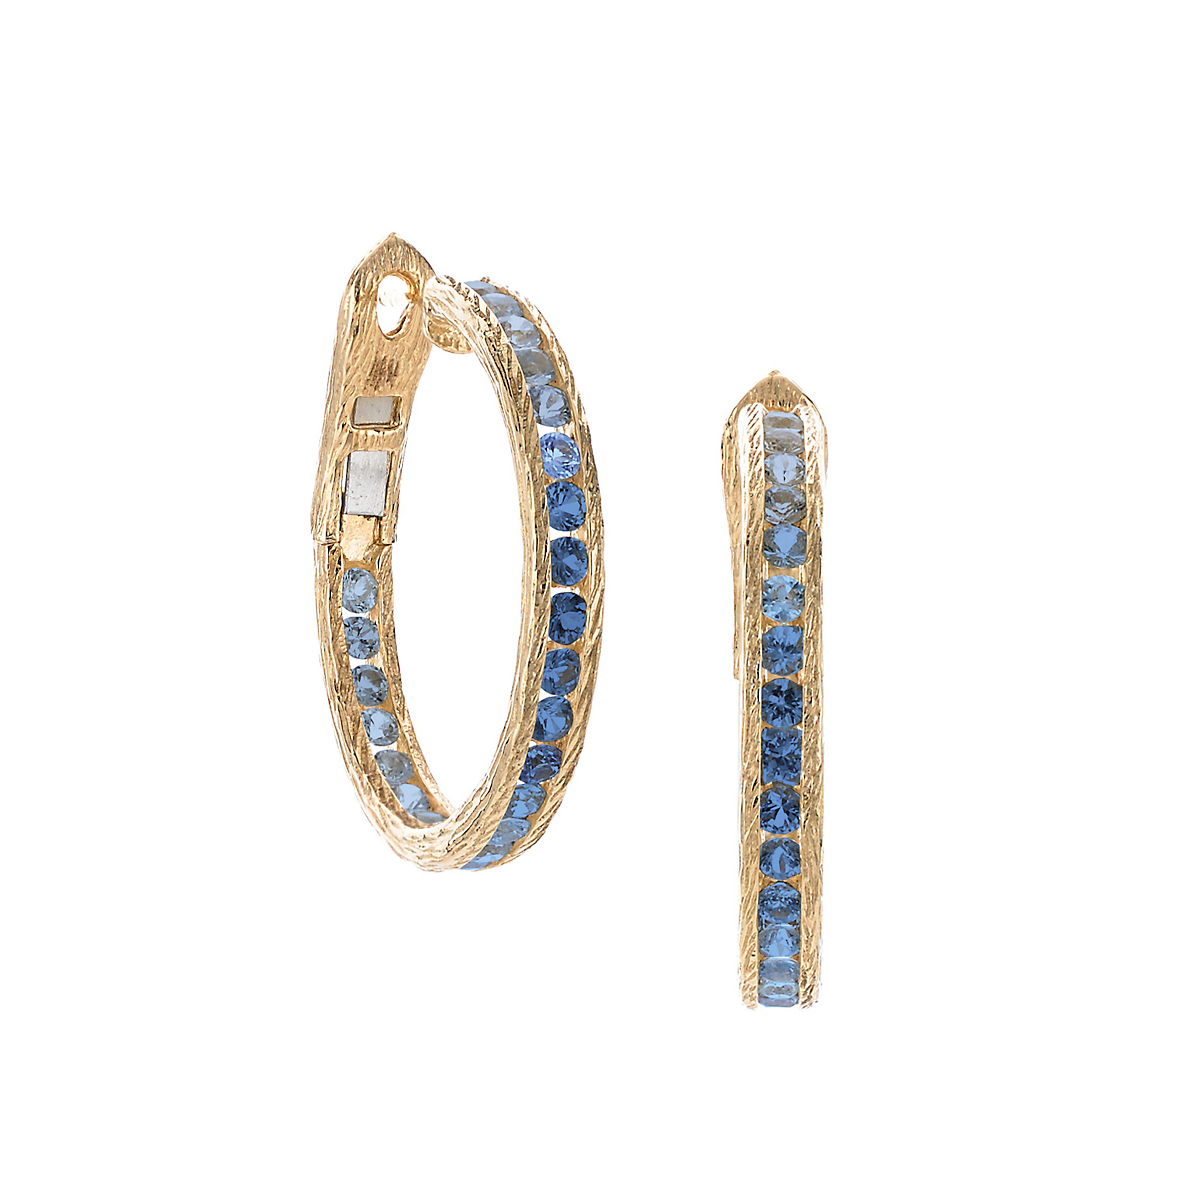 Elizabeth Showers Blue Sapphire Gold Hoop Earrings